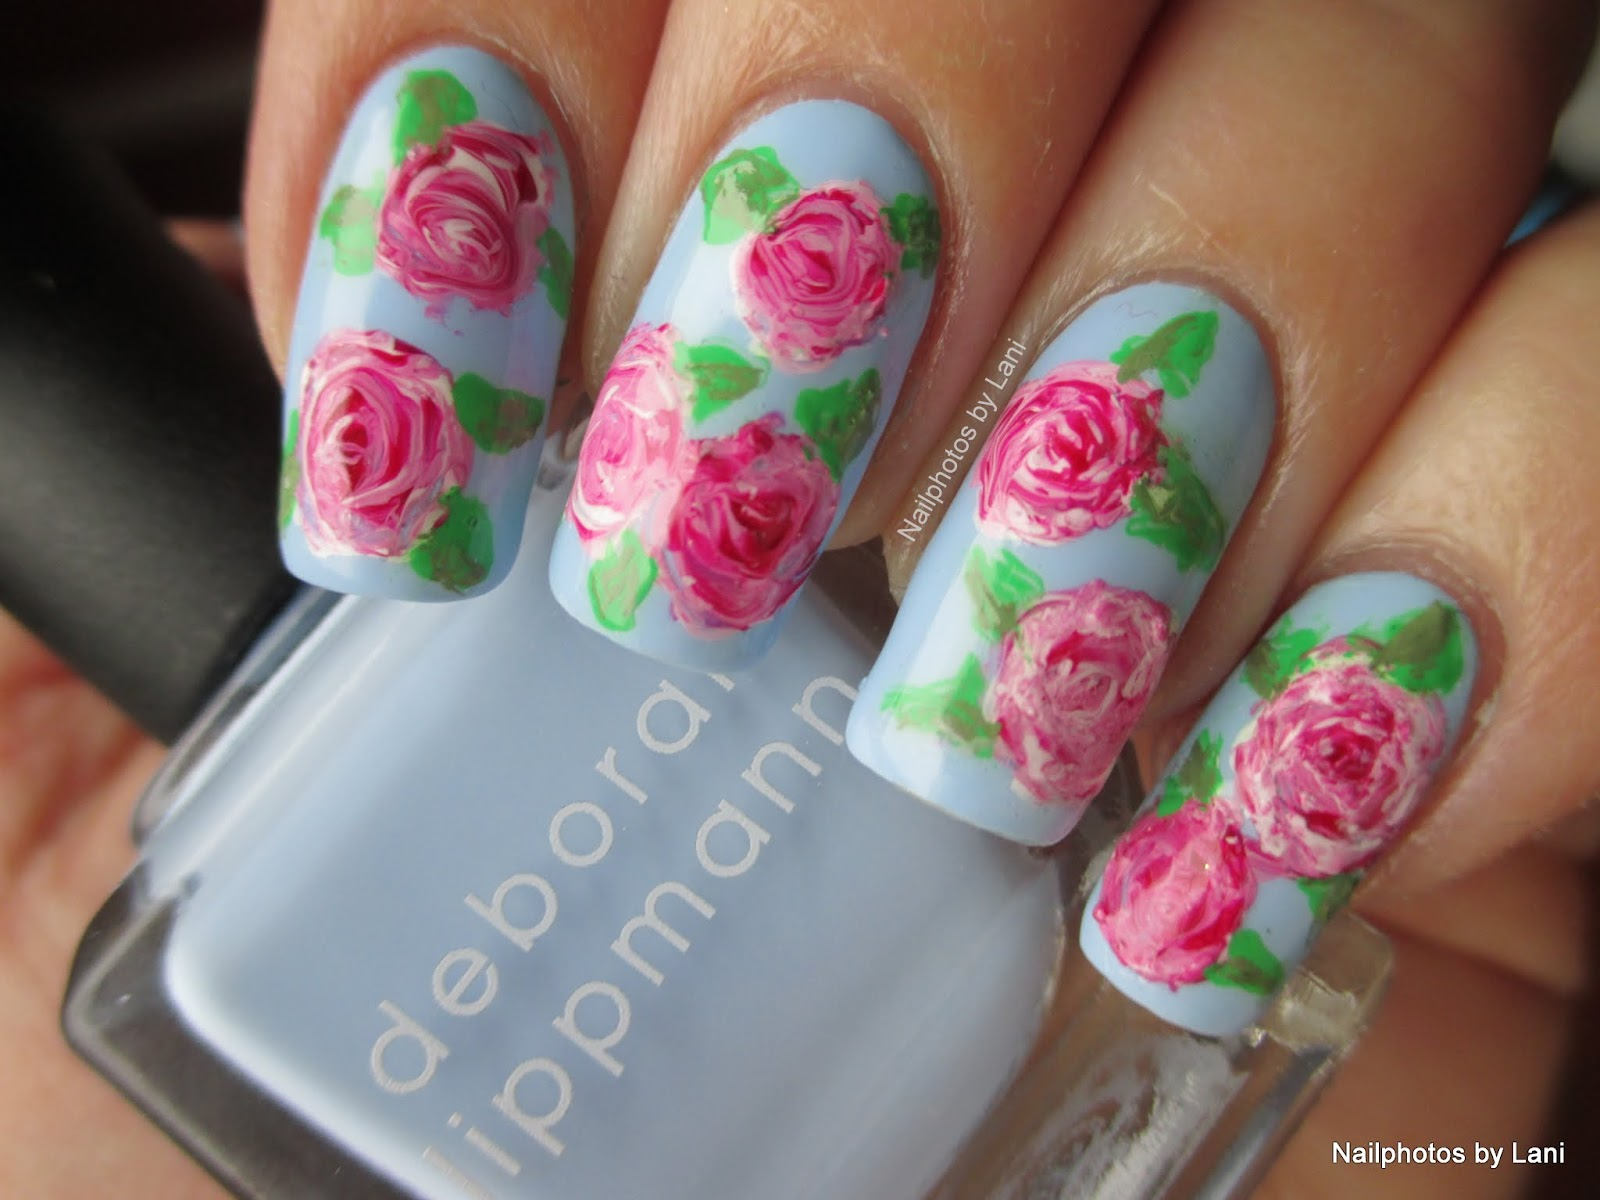 Nailphotos by Lani: Vintage Flowers - freehand nail art - inspired ...